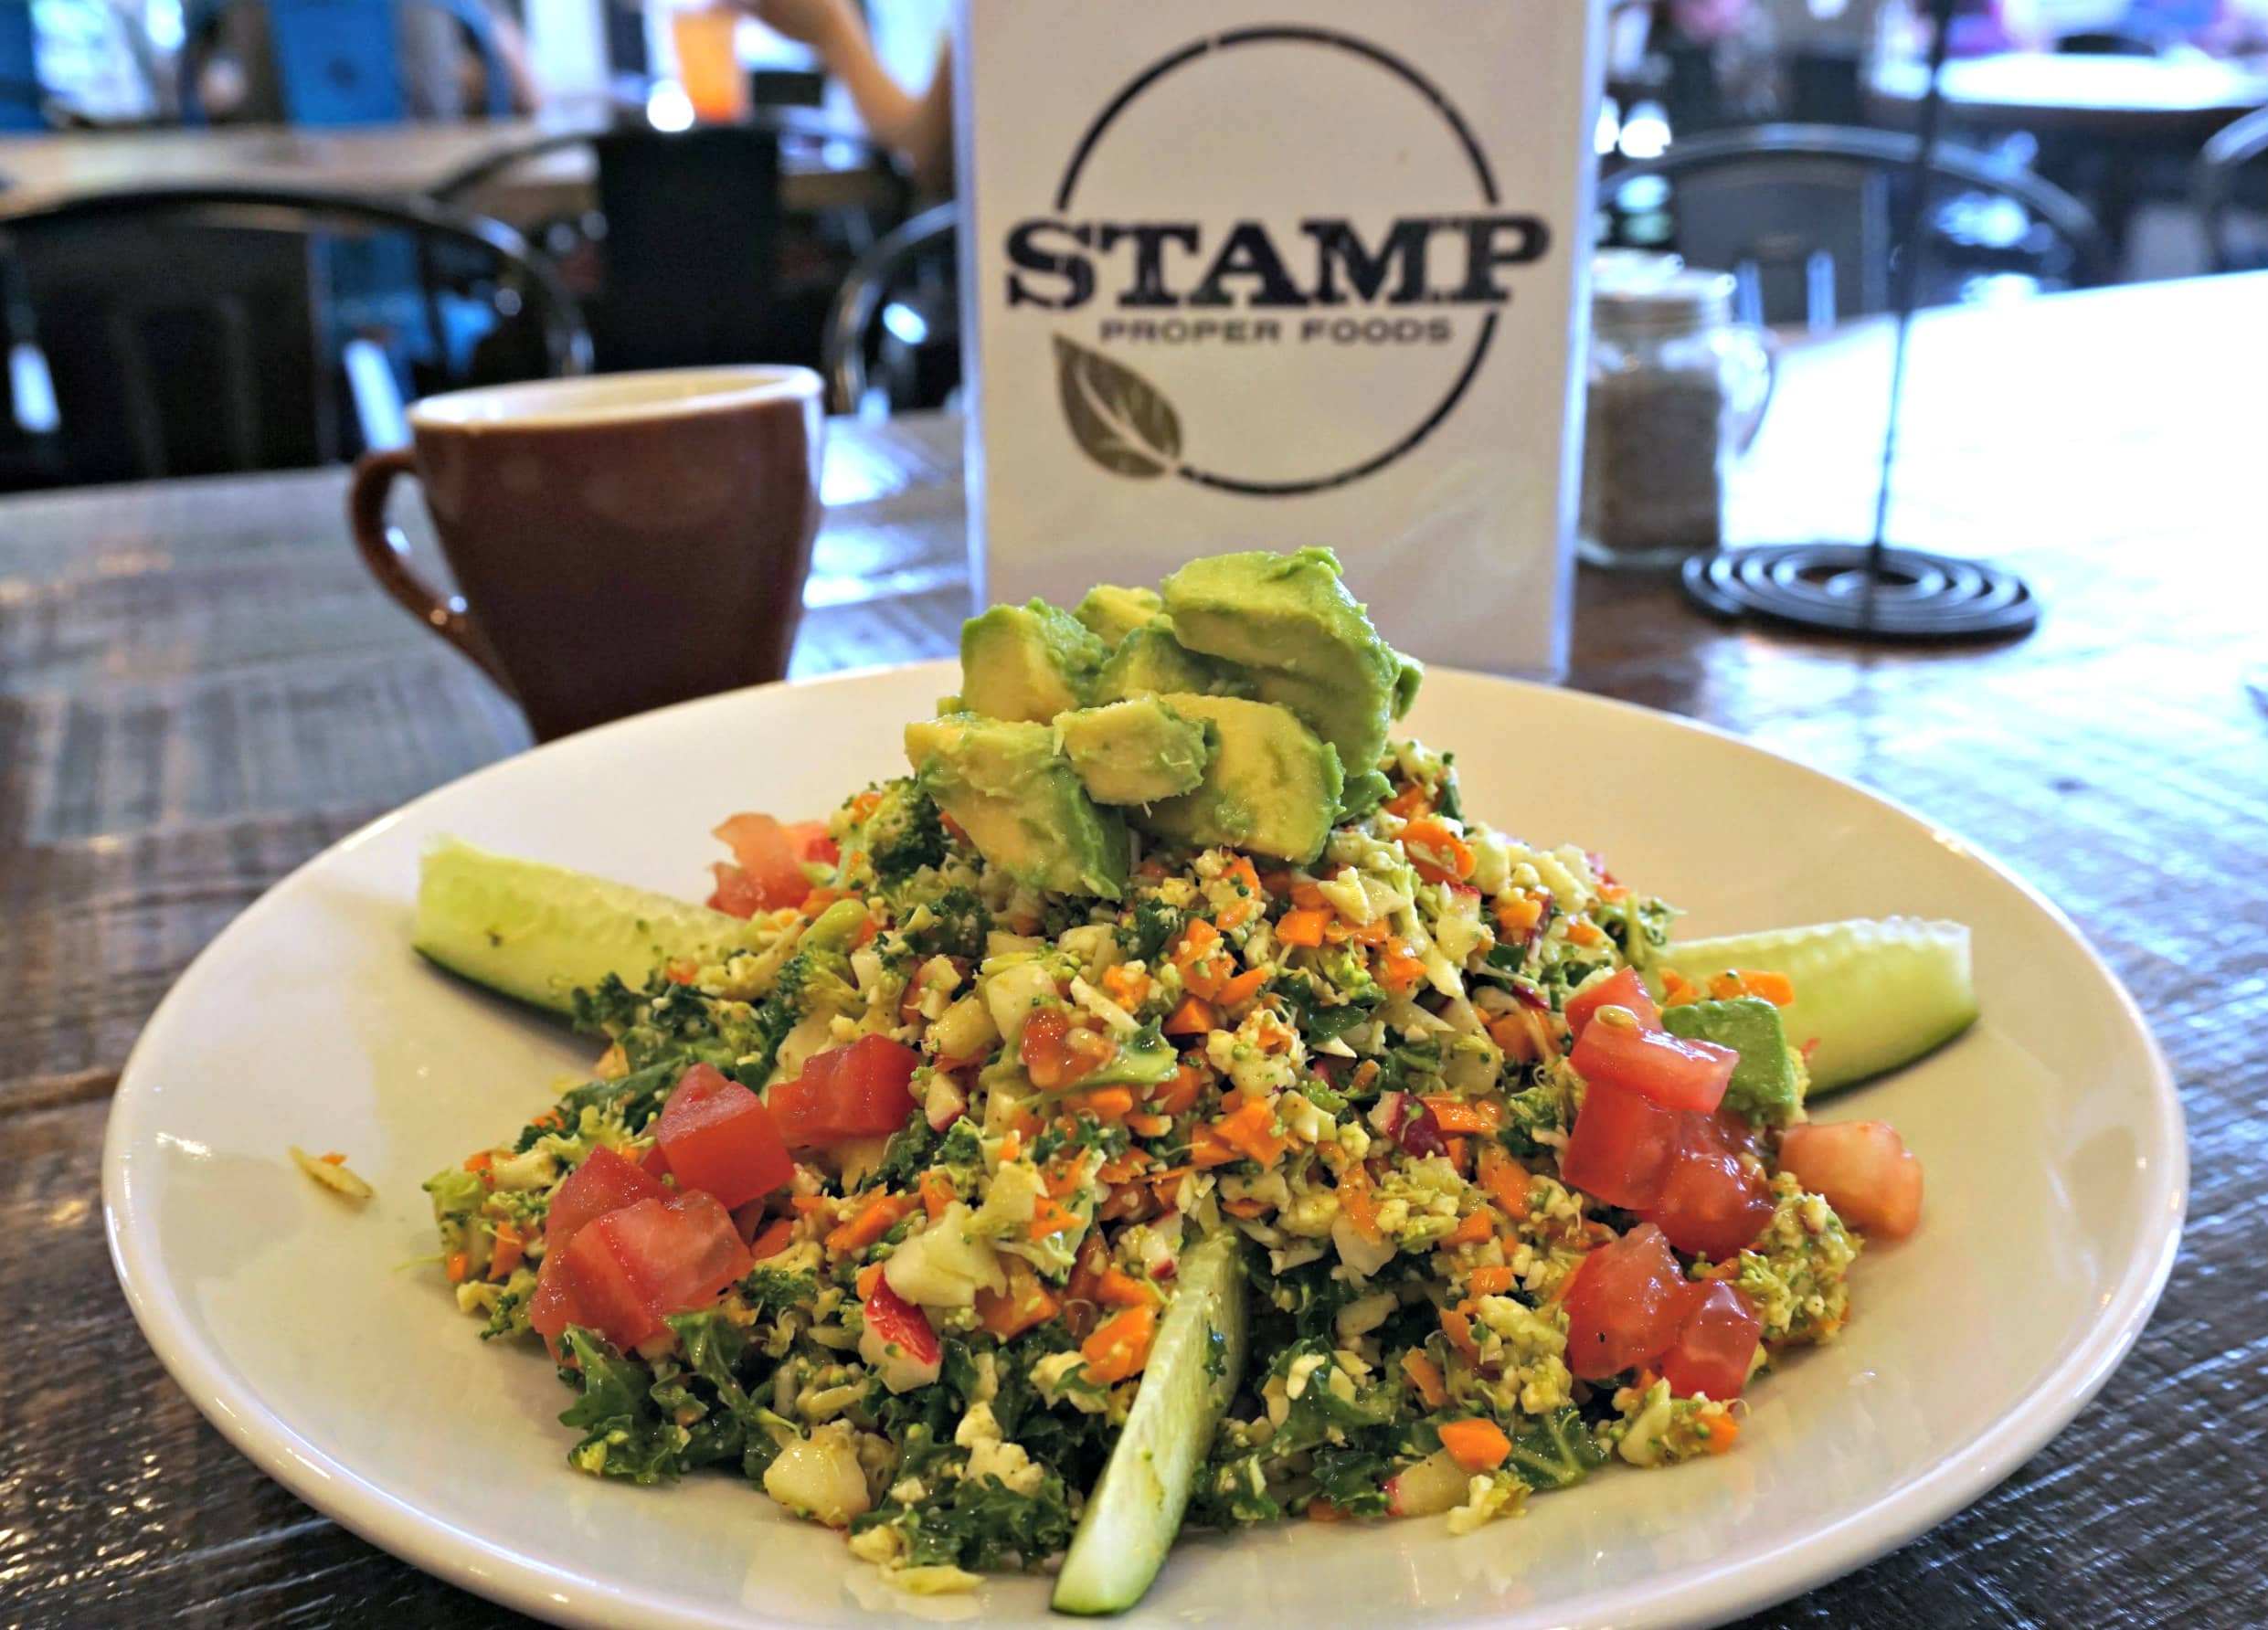 DC Chop Salad with coffee - Stamp Proper Foods